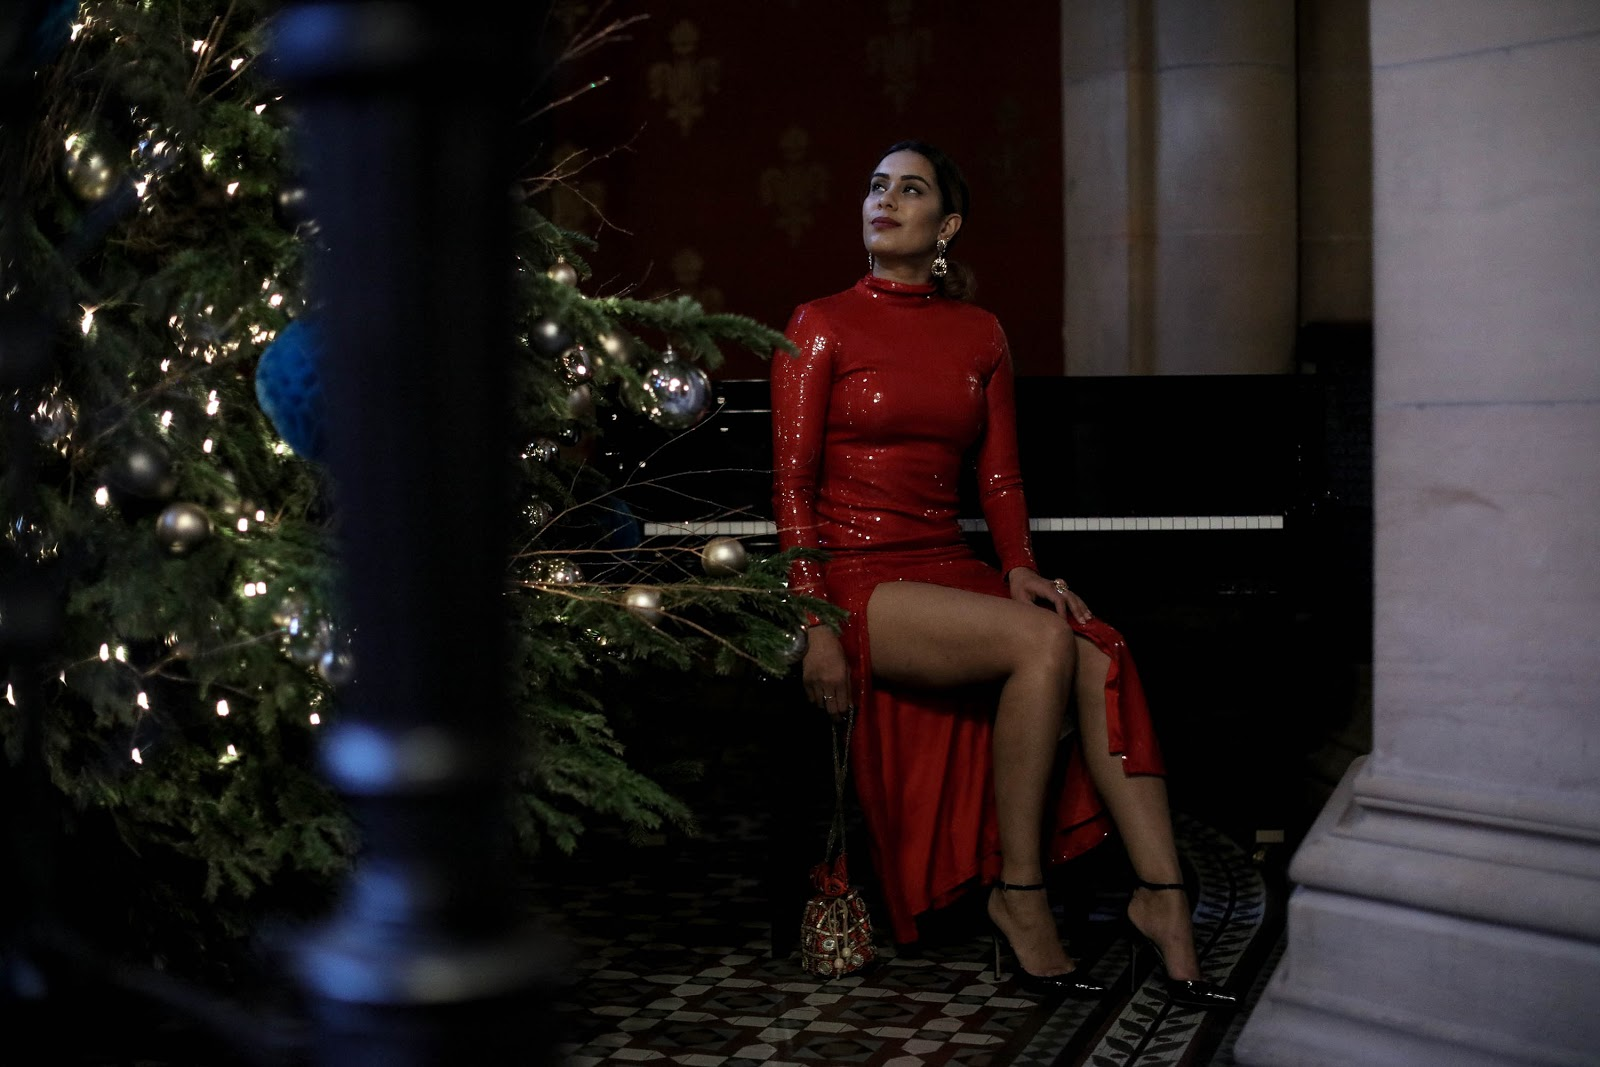 Reena Rai wearing Ashish x Warehouse red sequin dress for Christmas